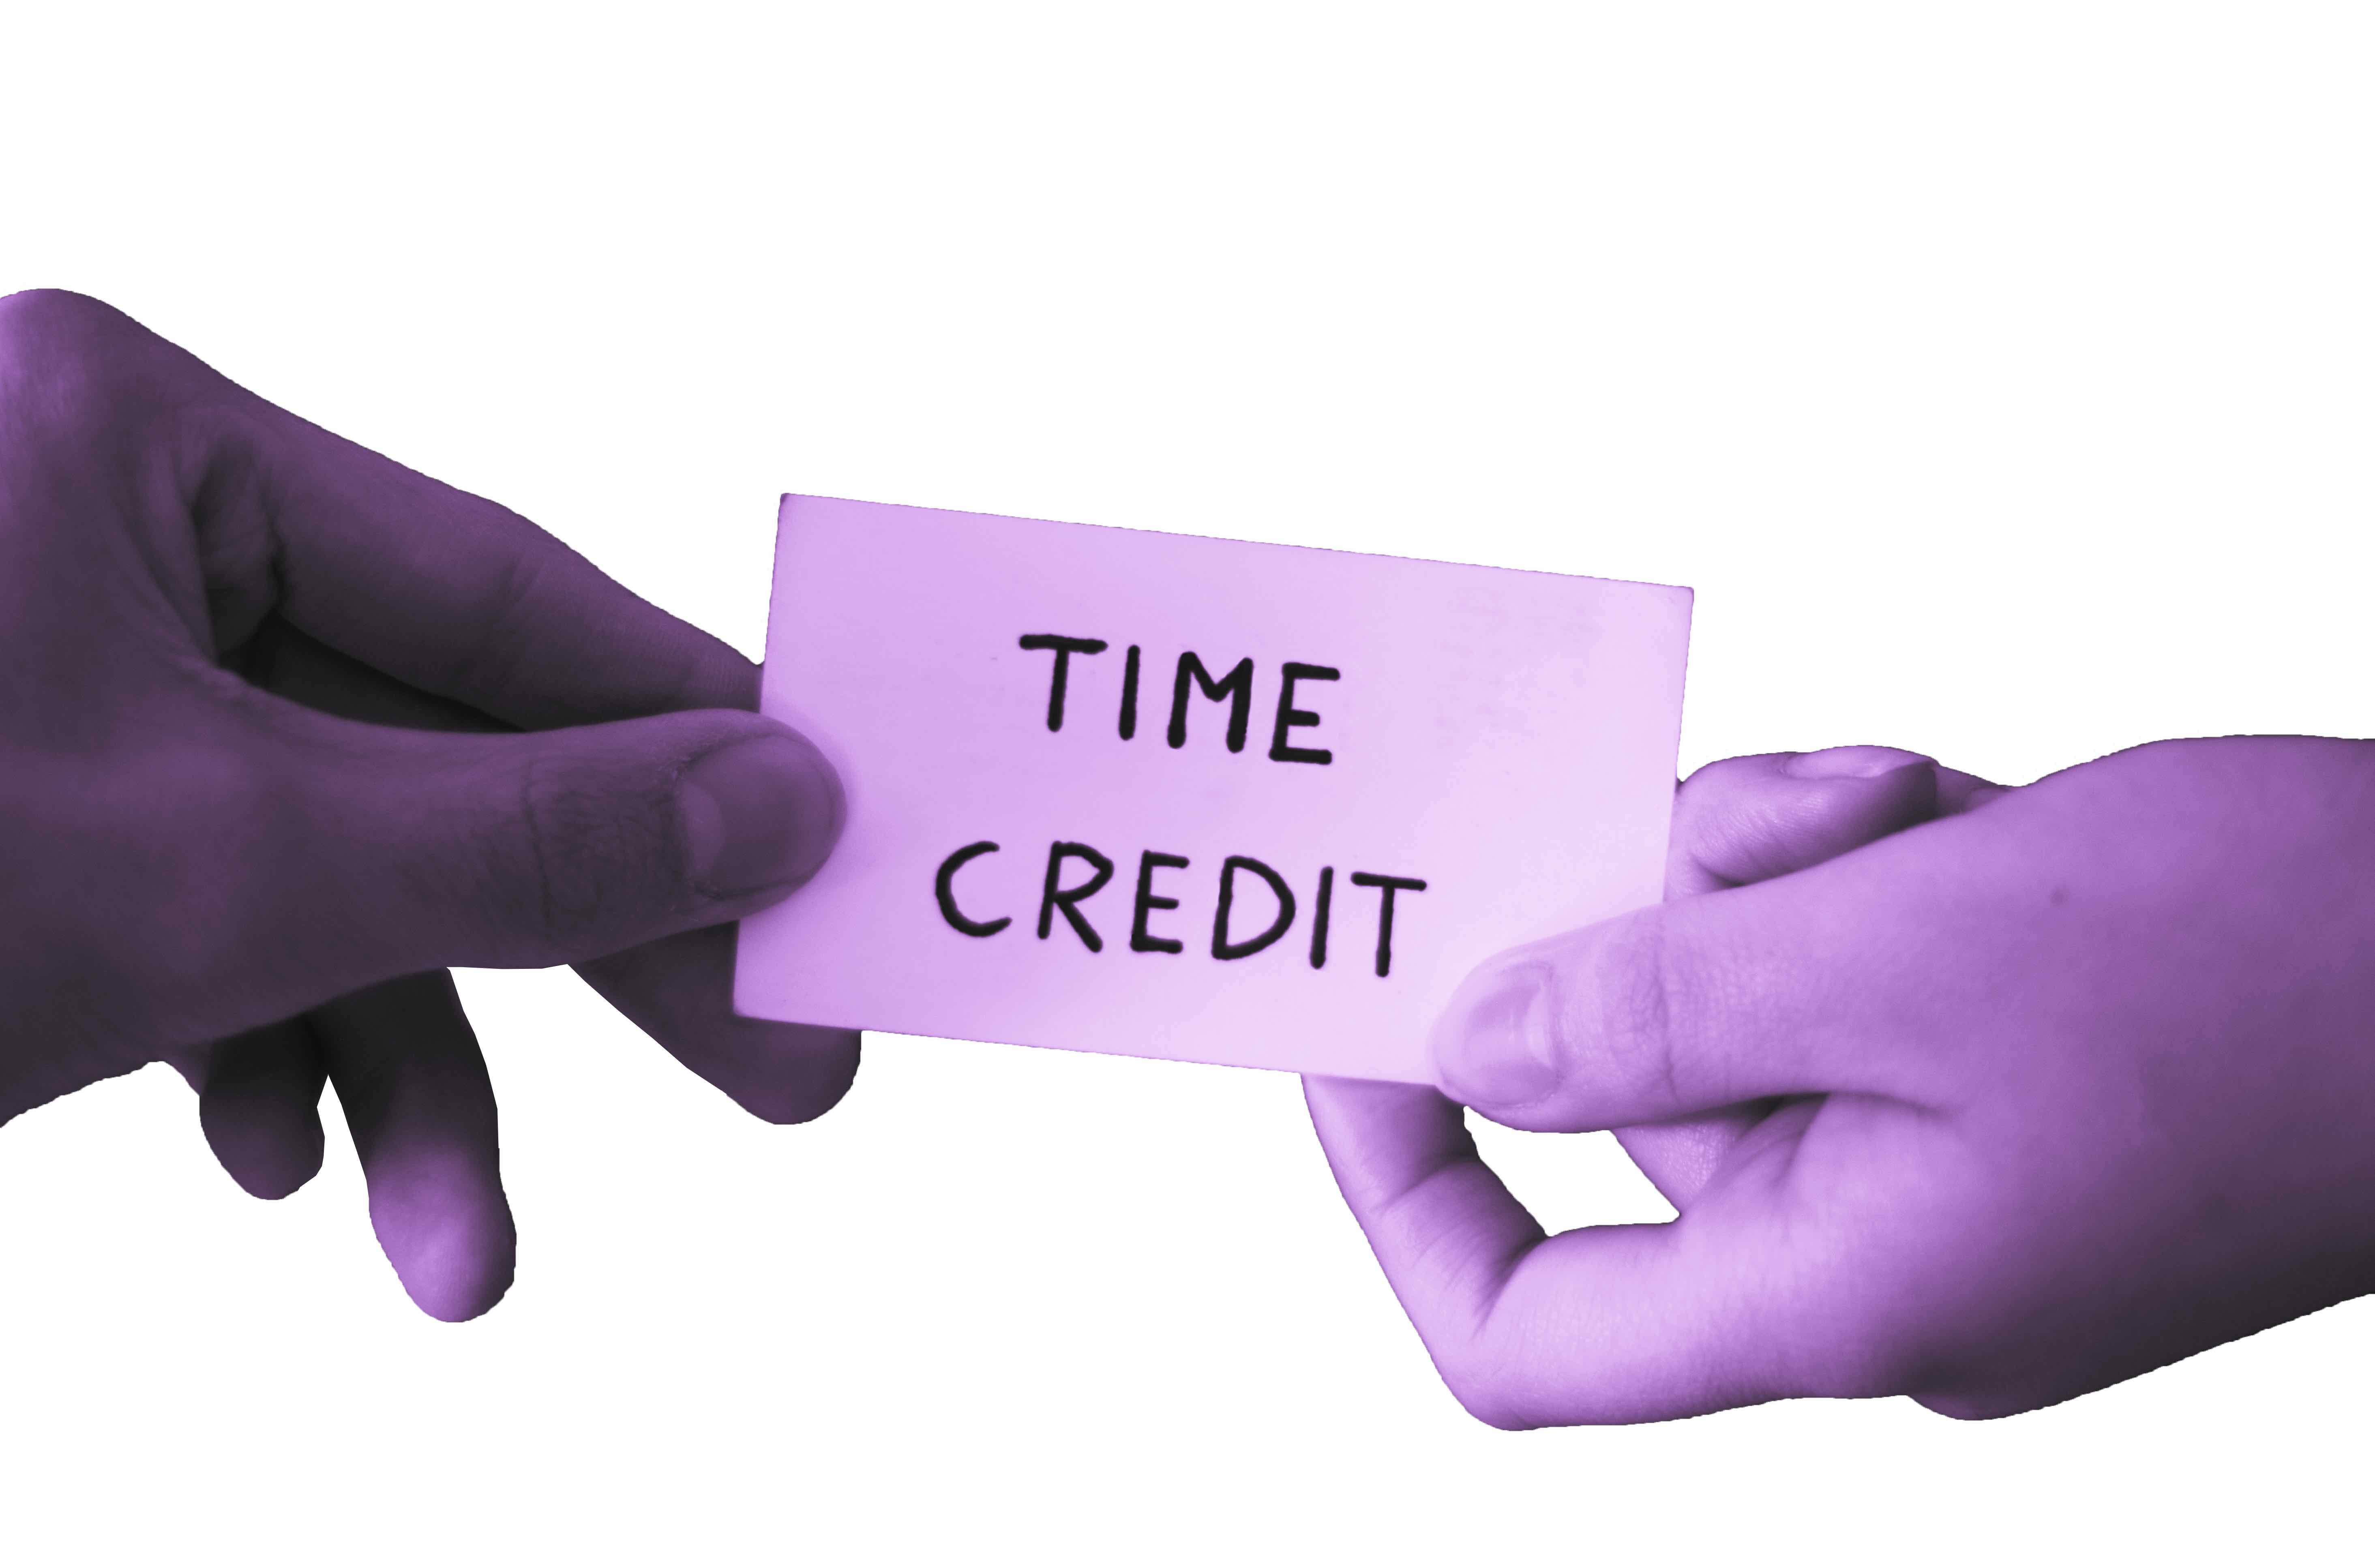 Time Credit